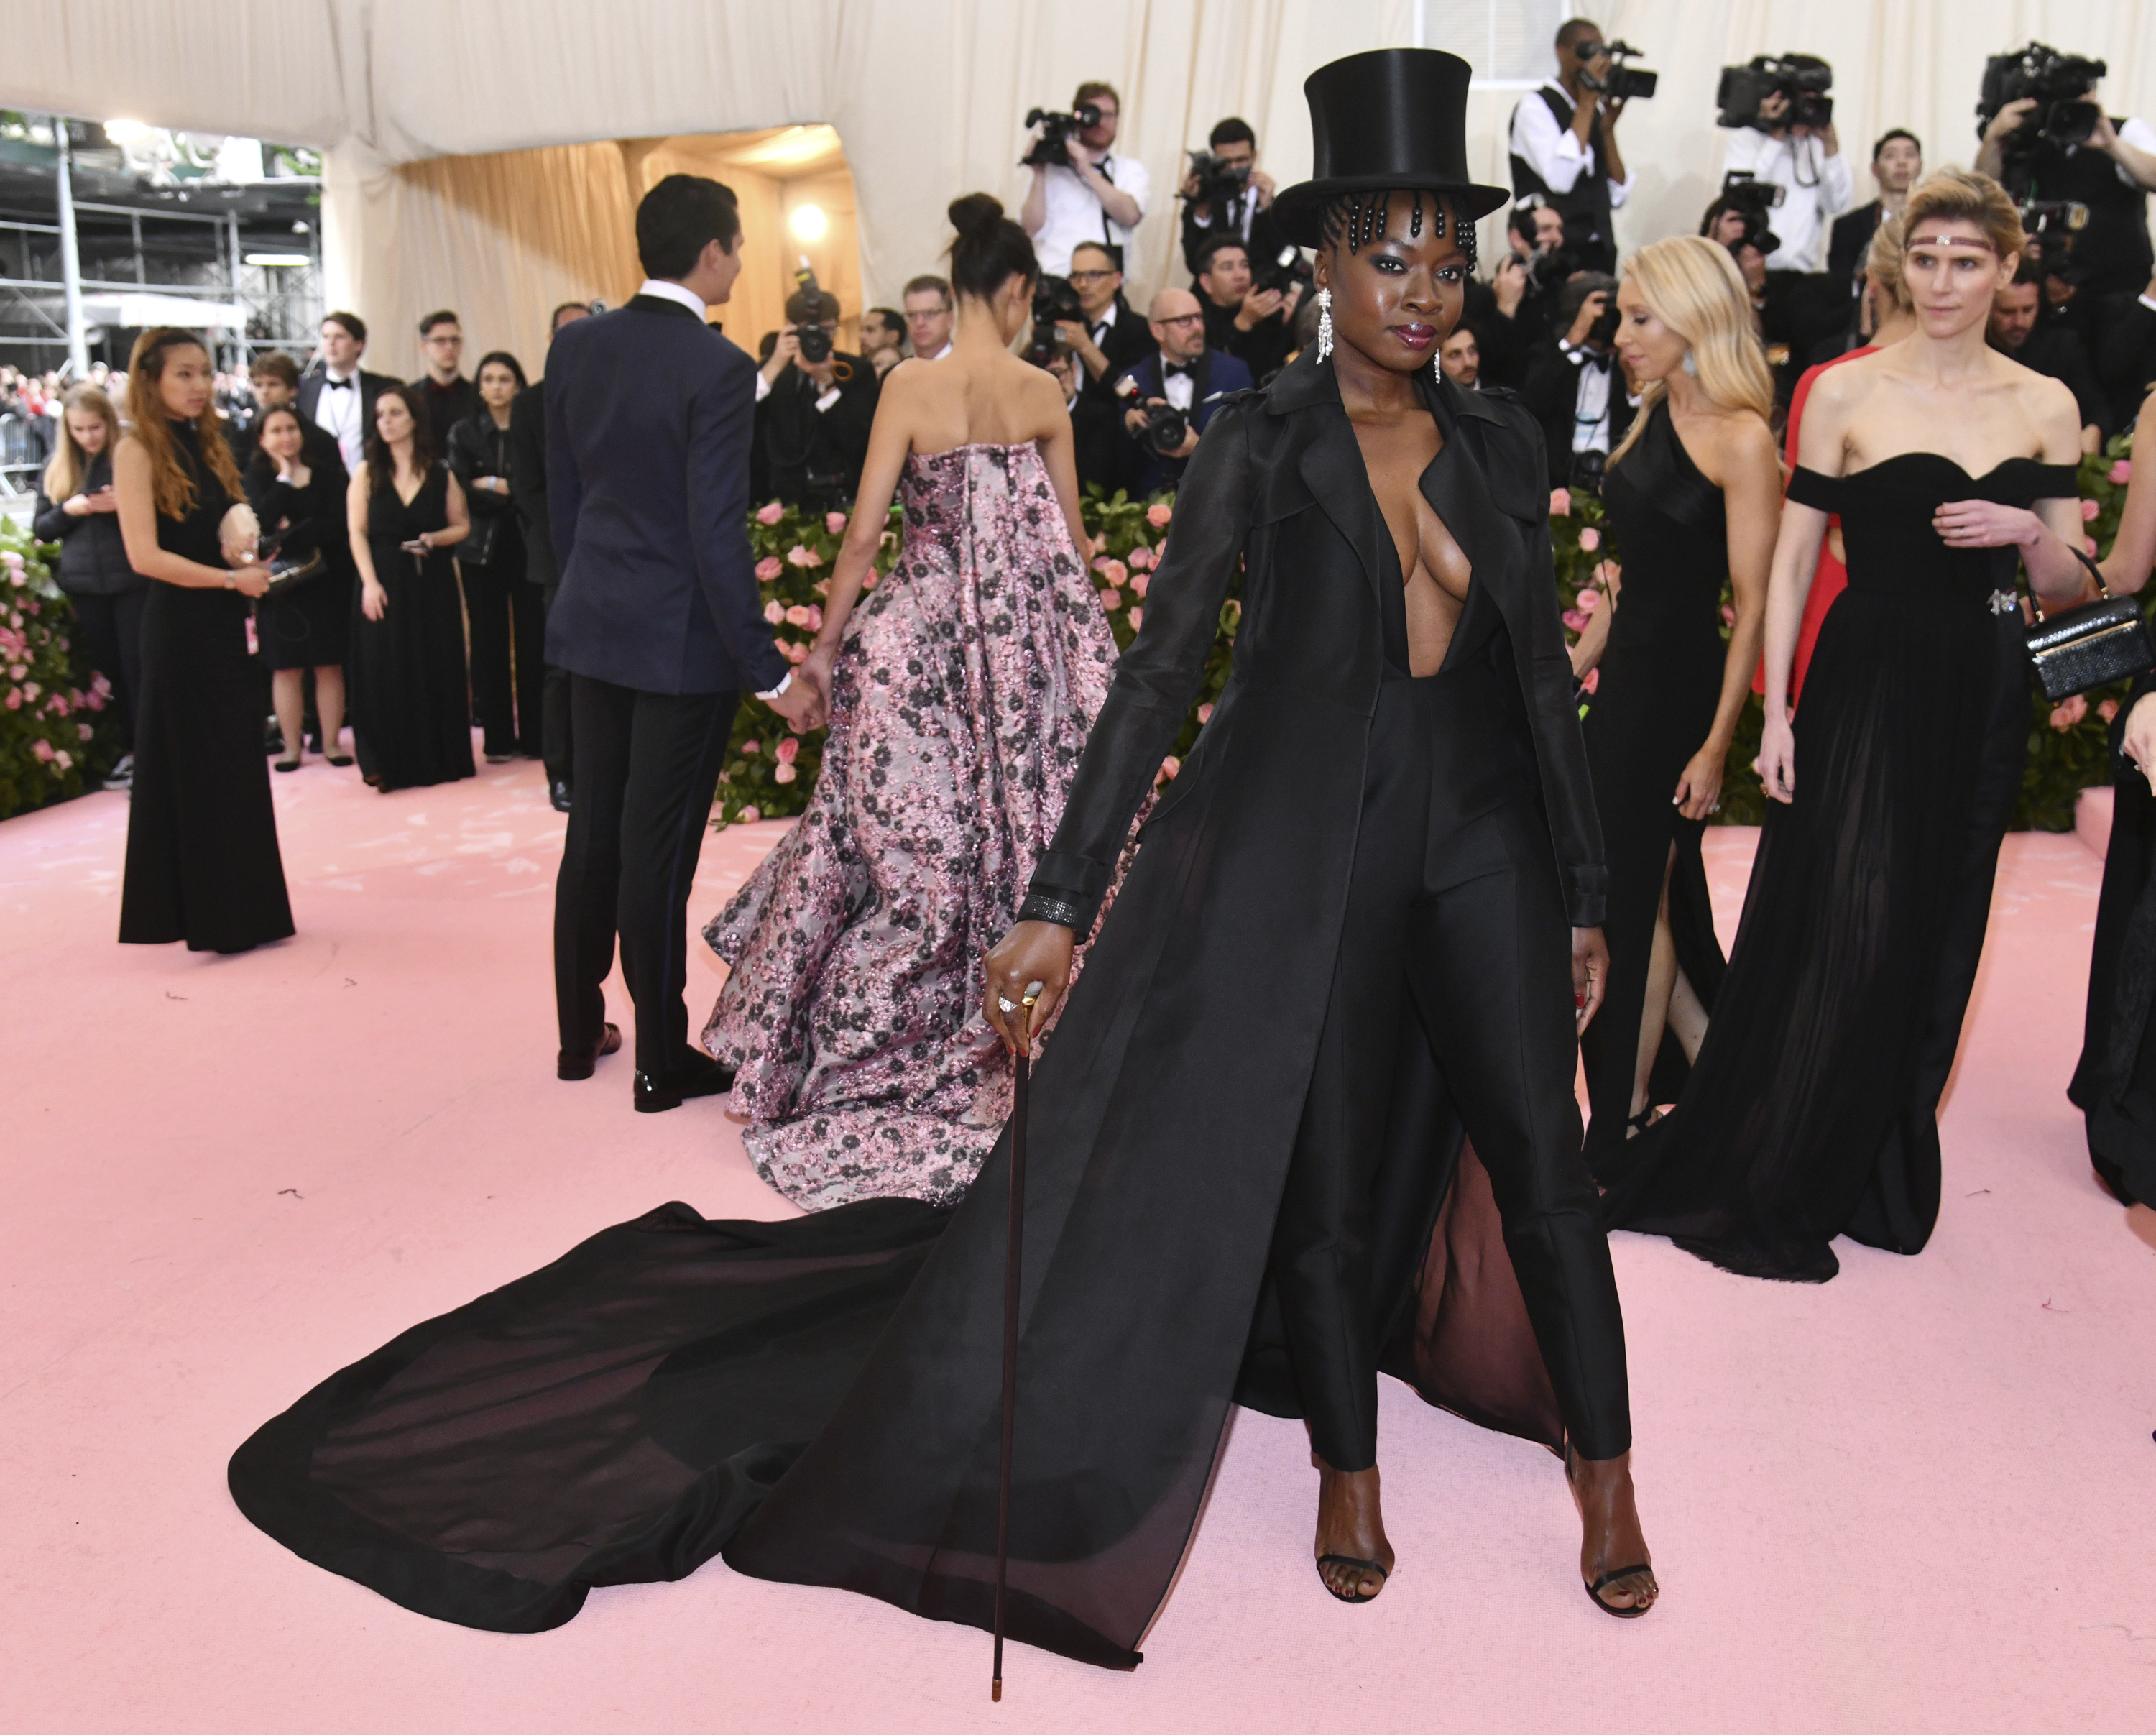 Image result for diana gurira MET GALA 2019